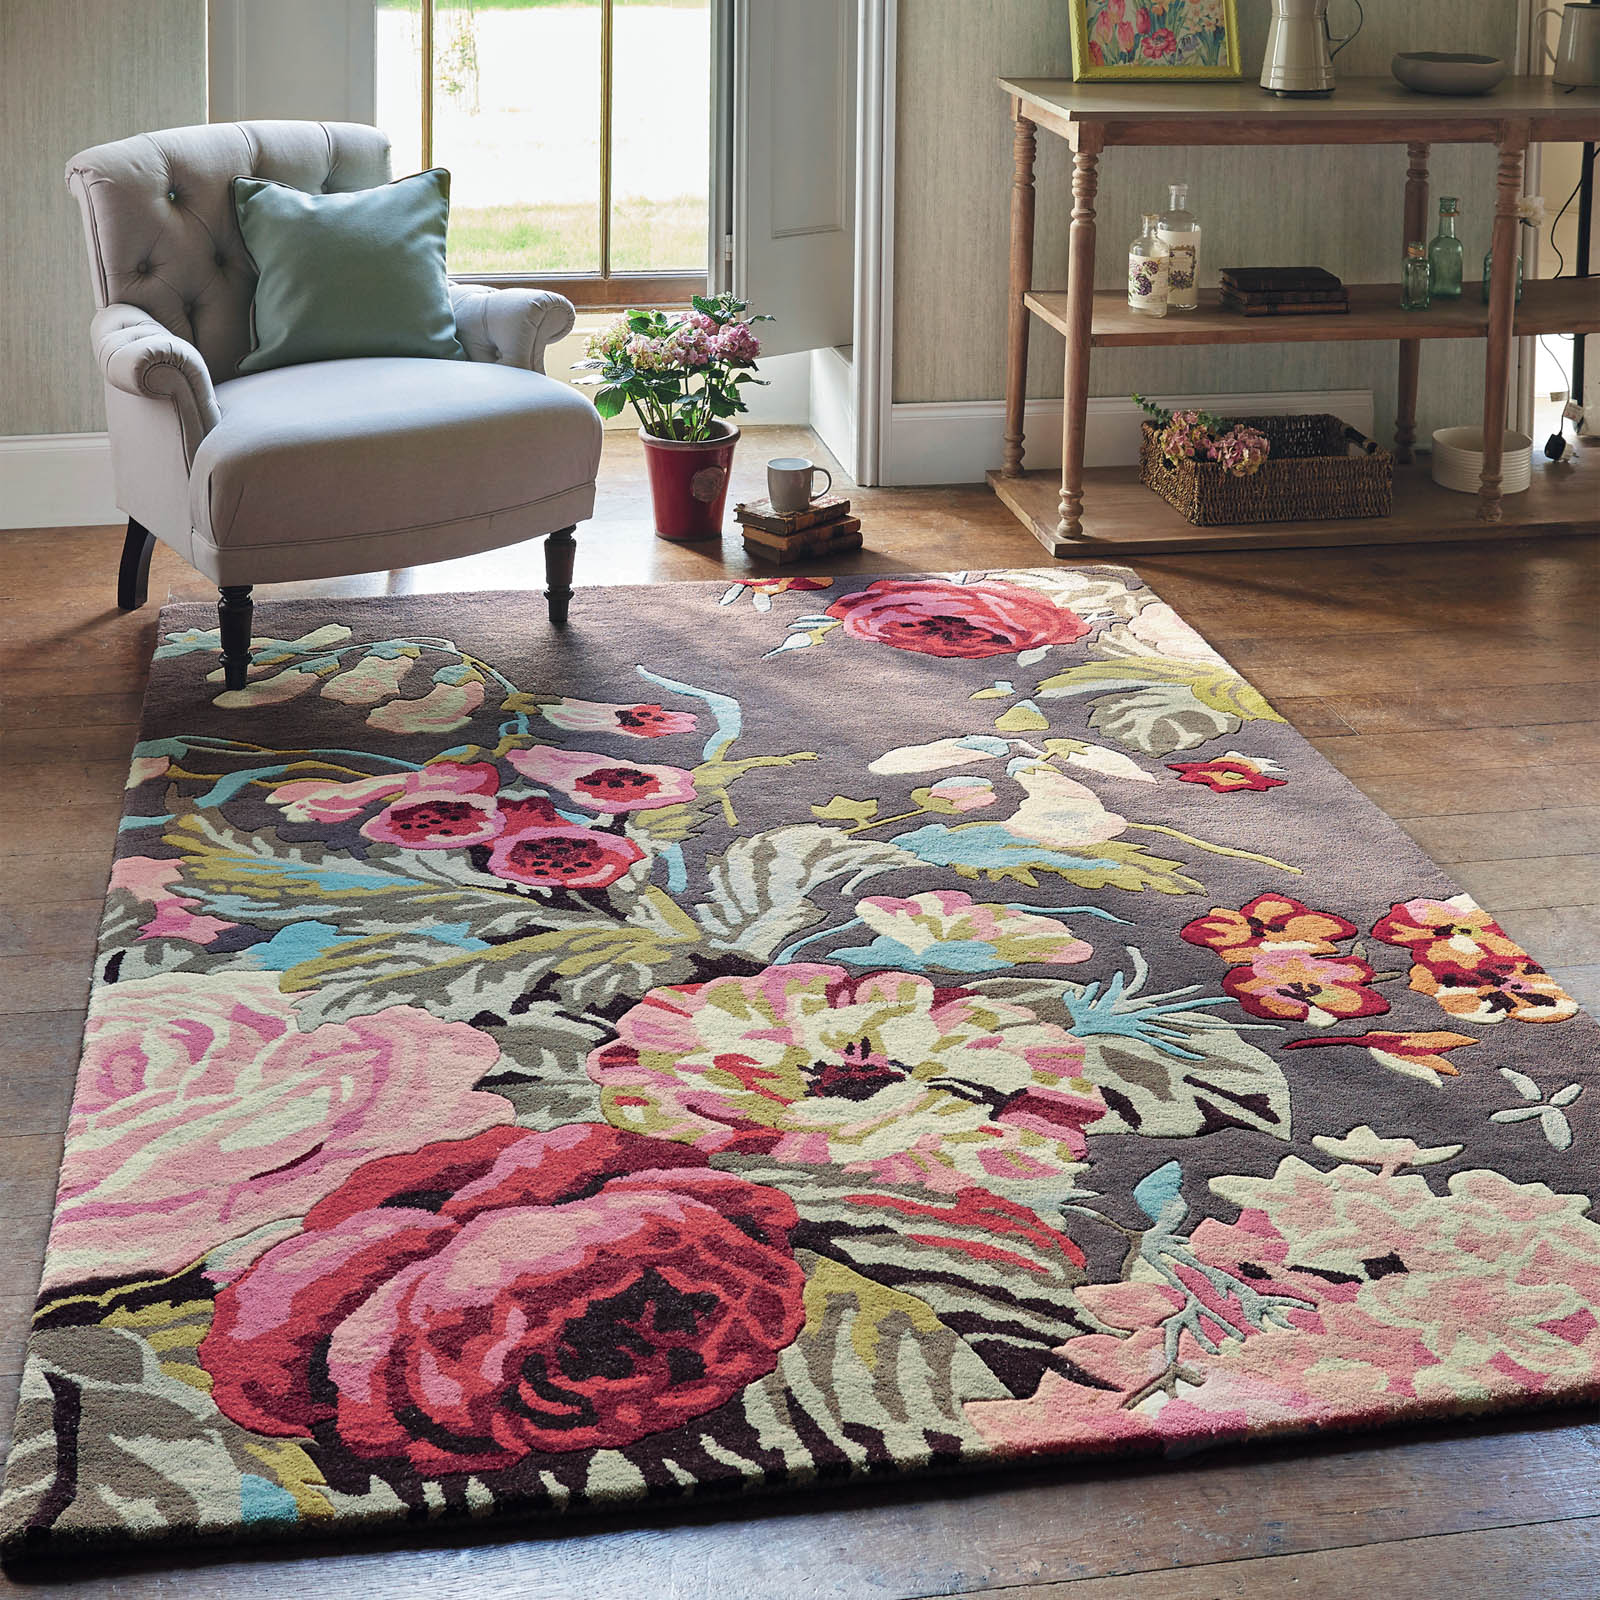 Sanderson Rugs Shop Online With Free Delivery At The Rug